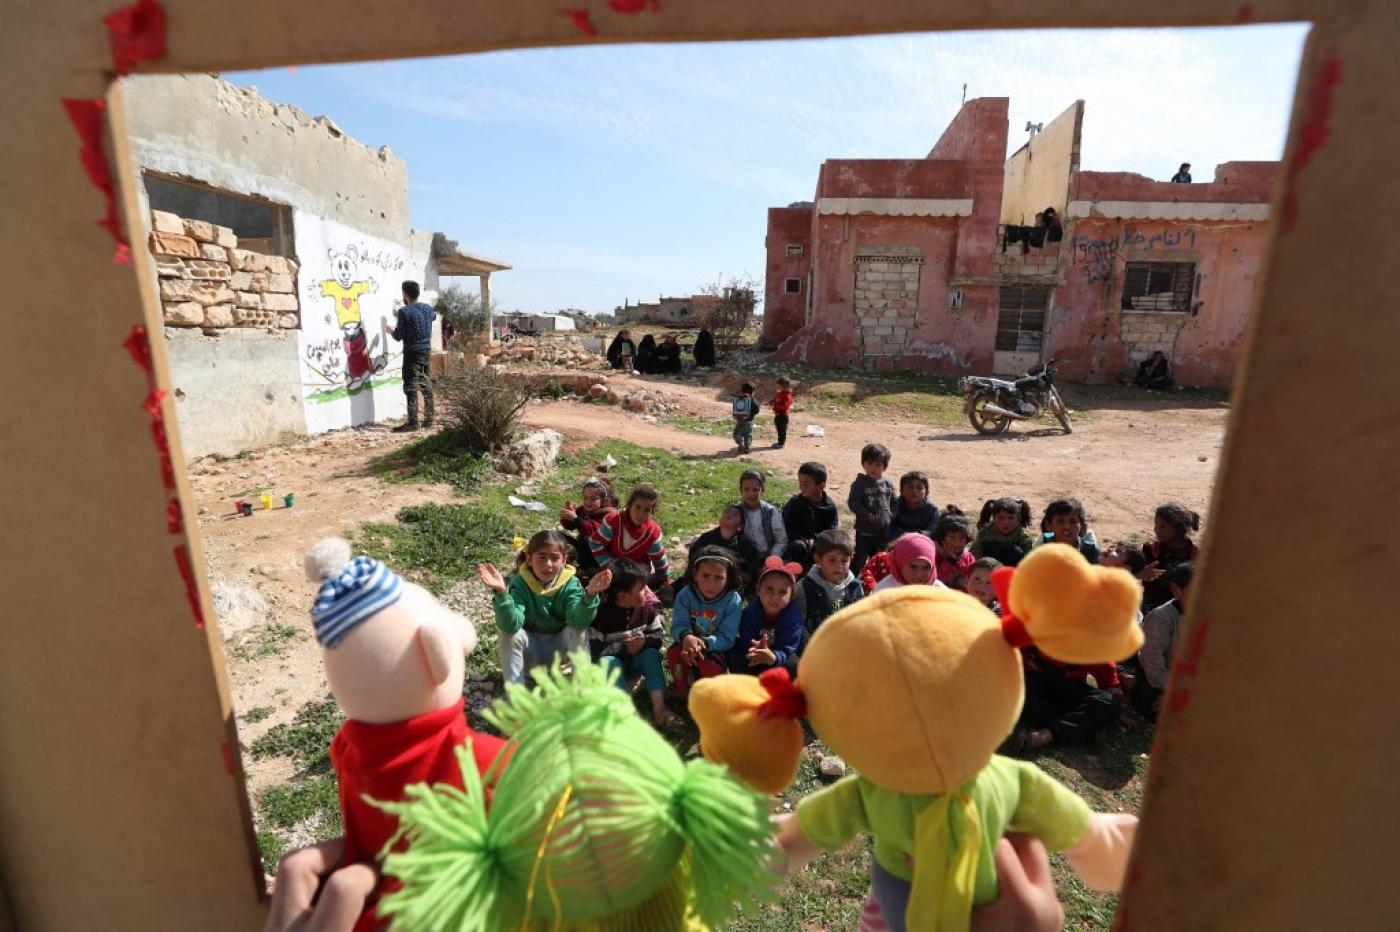 Syrian children watch a puppet show amid the ruins of buildings destroyed during Syria's civil war in the northwestern Idlib province on 30 March 2021.